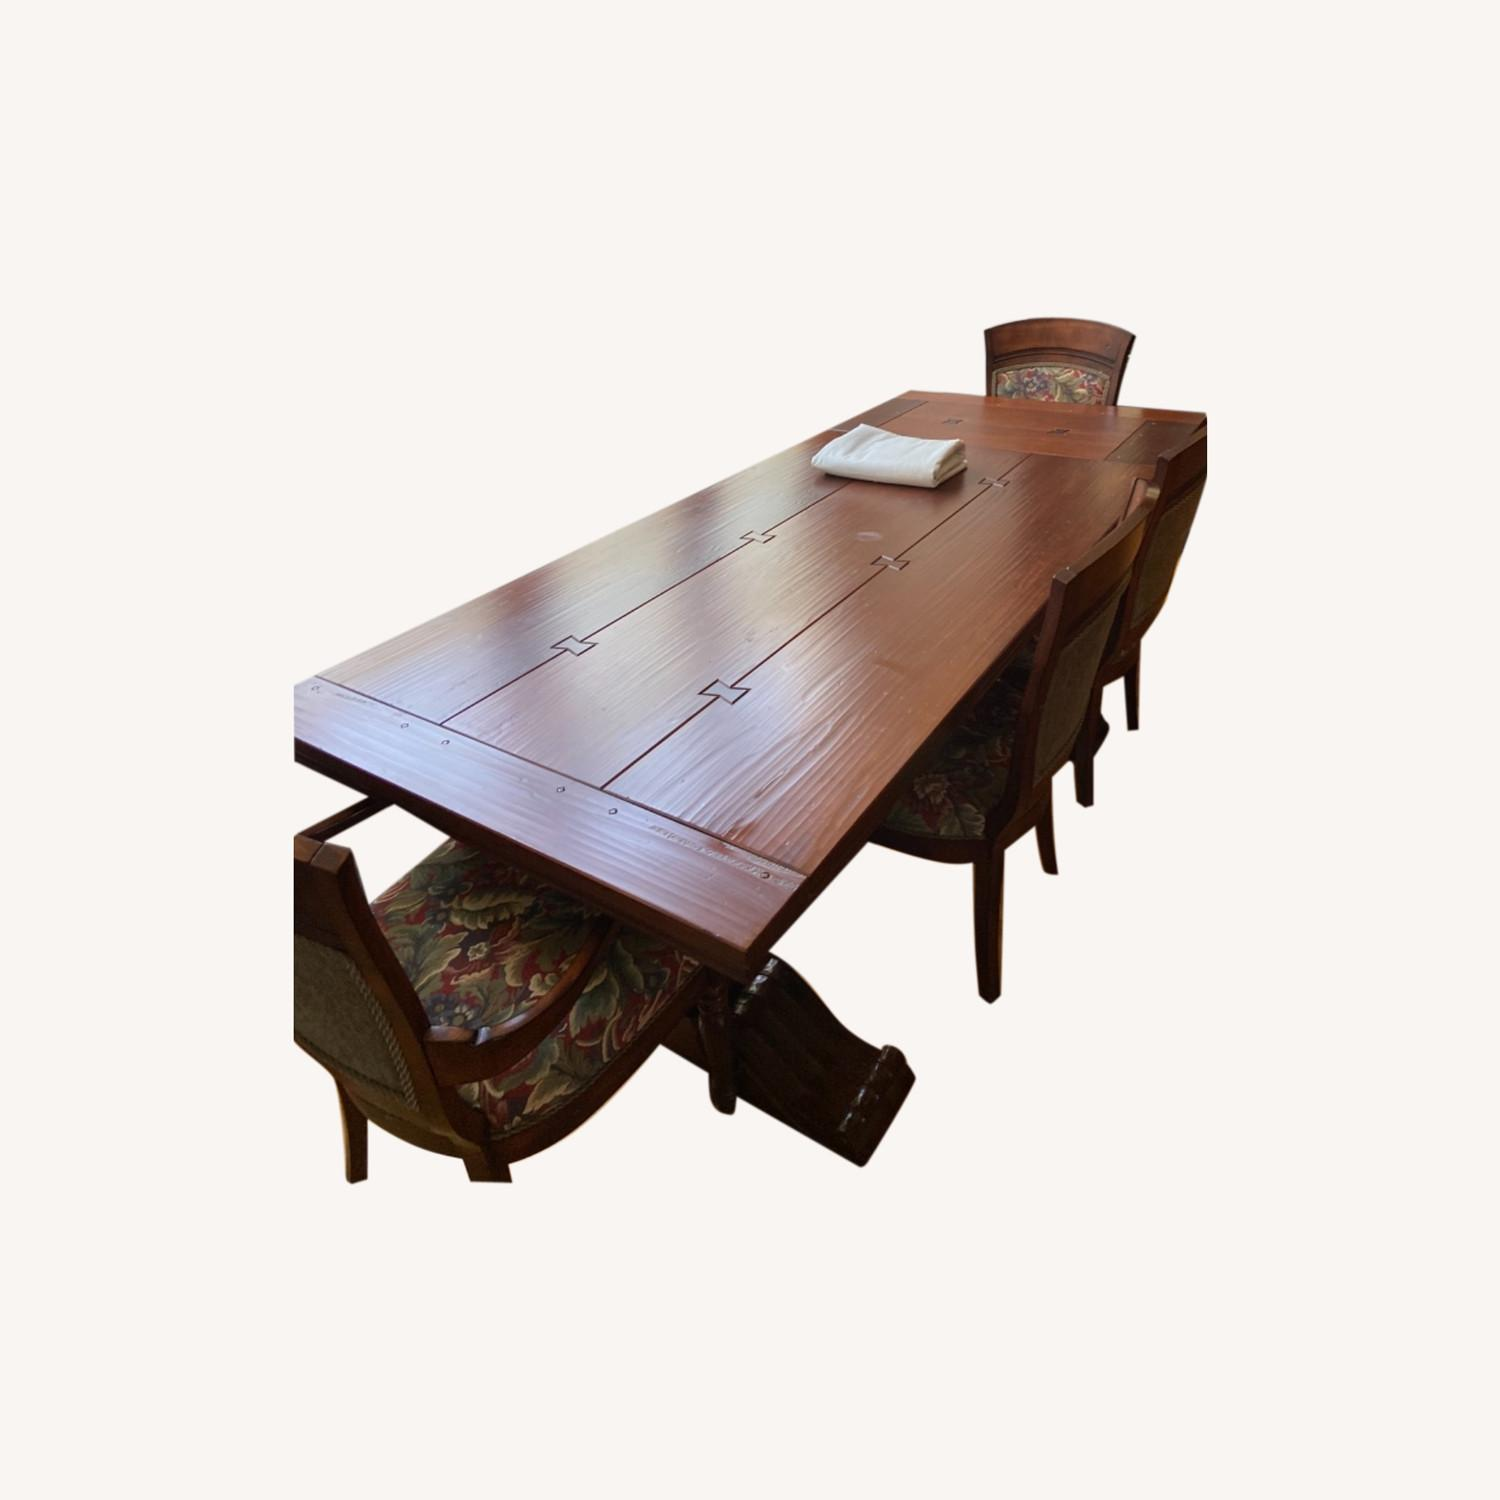 Ethan Allen Dining Table and Chairs - image-0